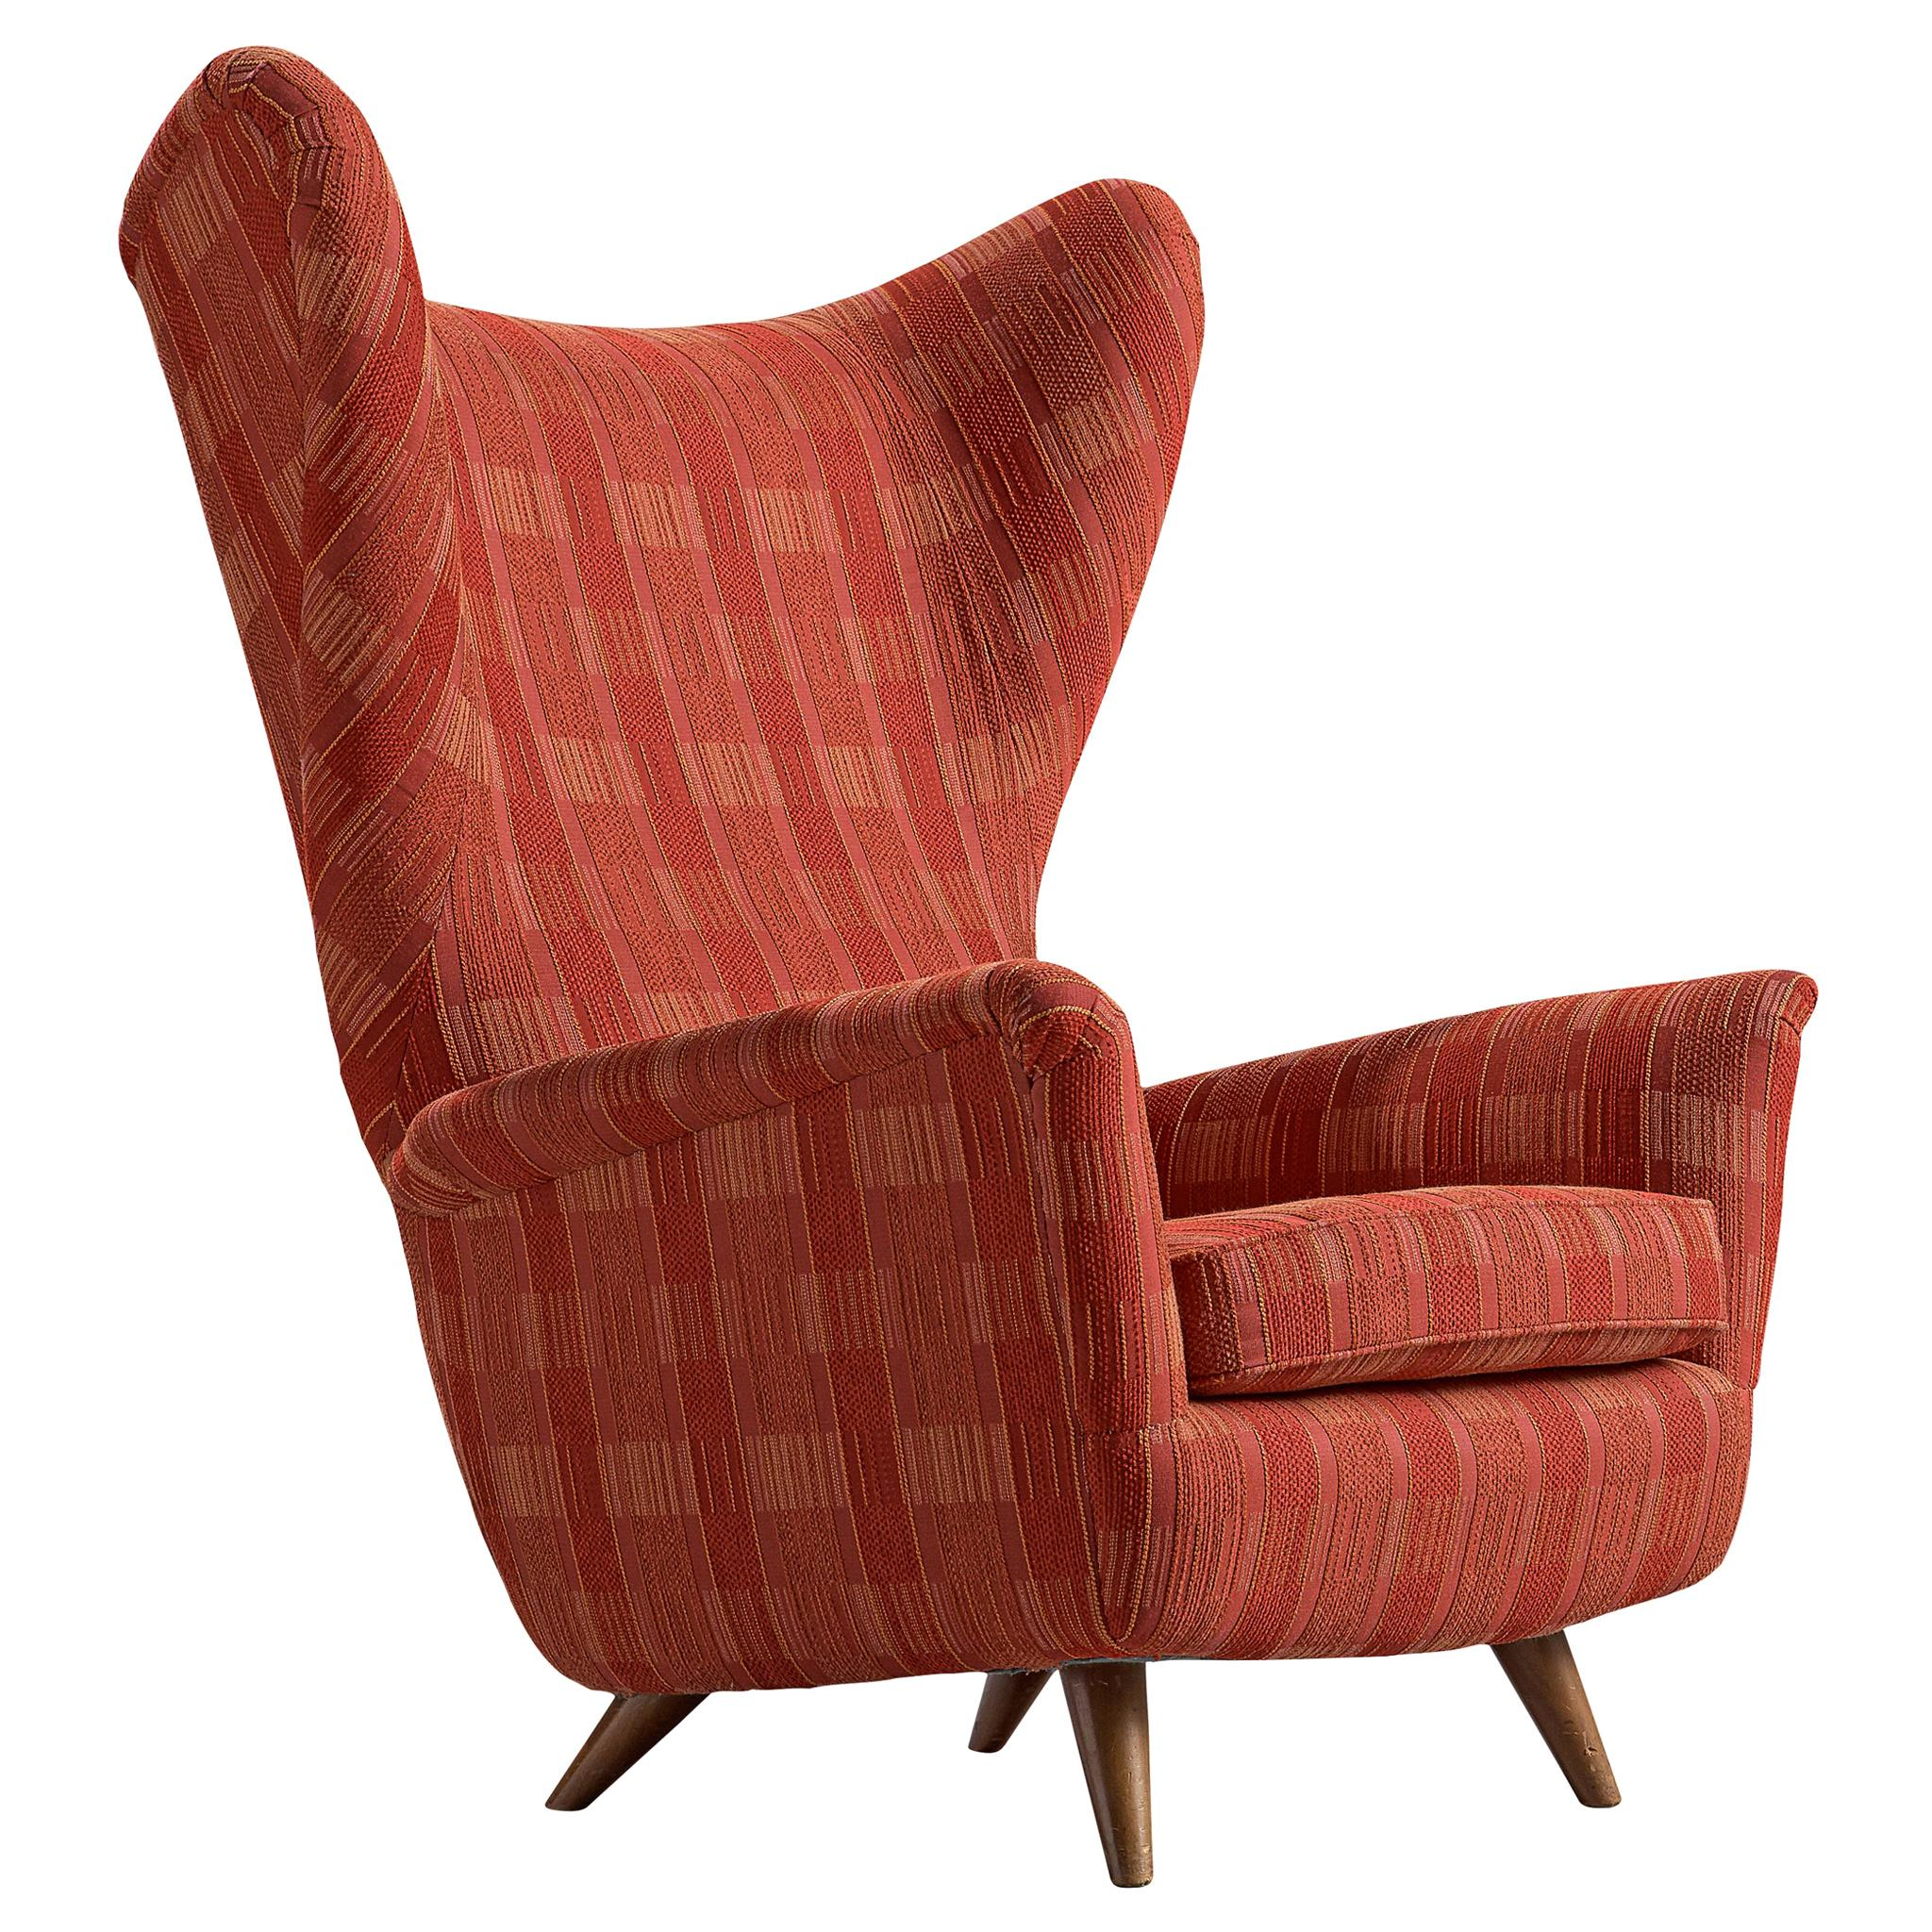 Italian Large Wingback Chair in Red Upholstery